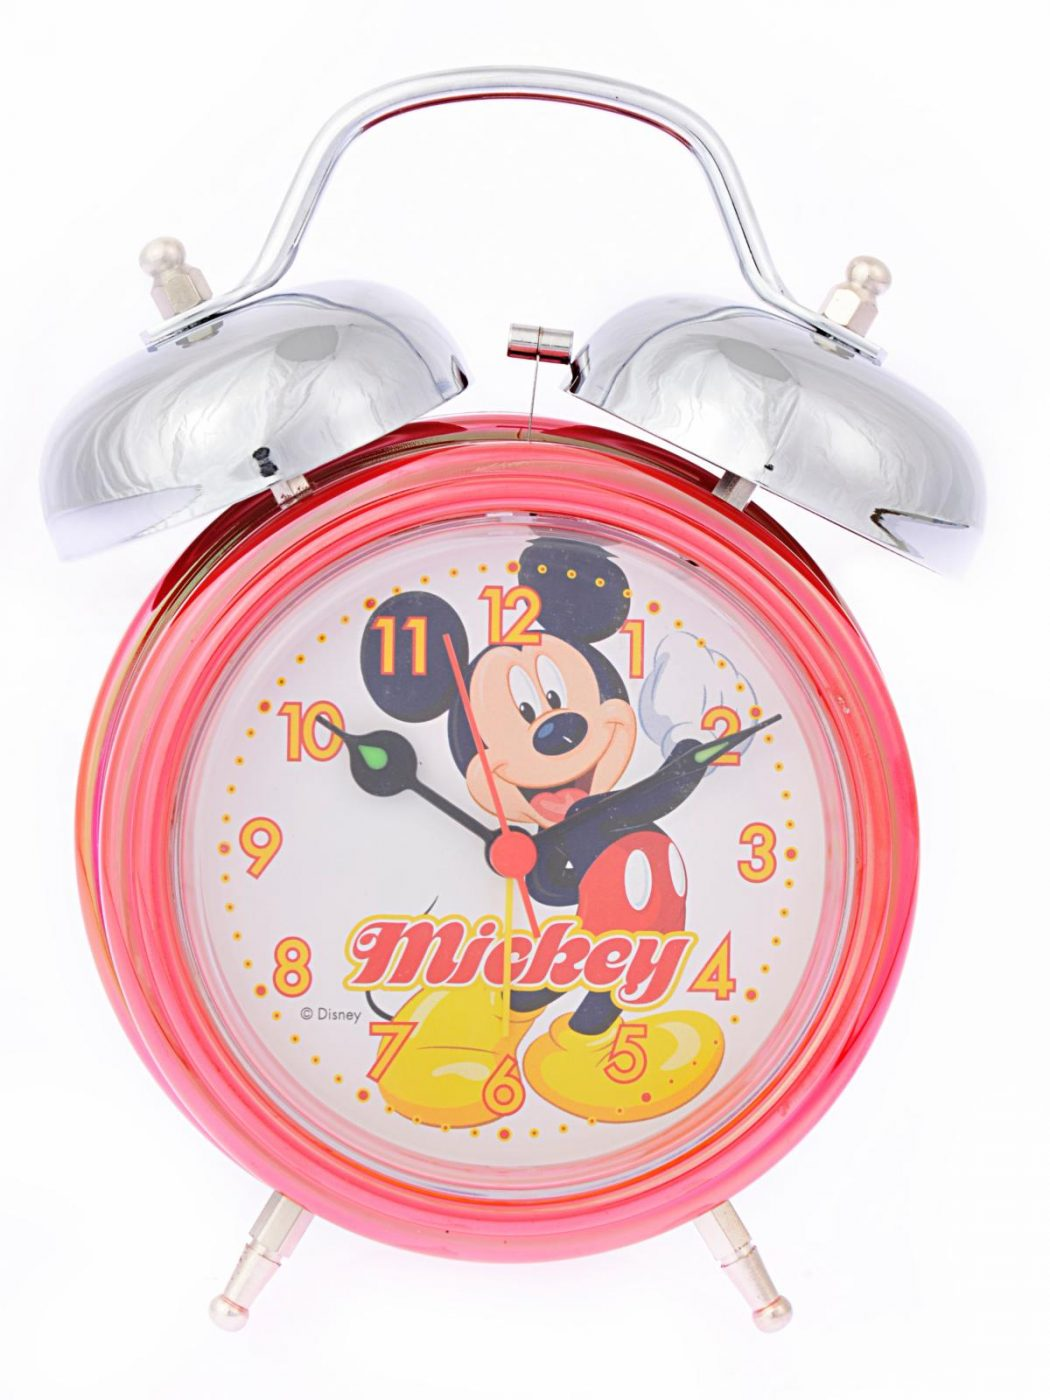 10823_1-disney-mickey-alarm-clock 12 Fashion Trends of Summer 2019 and How to Style Them